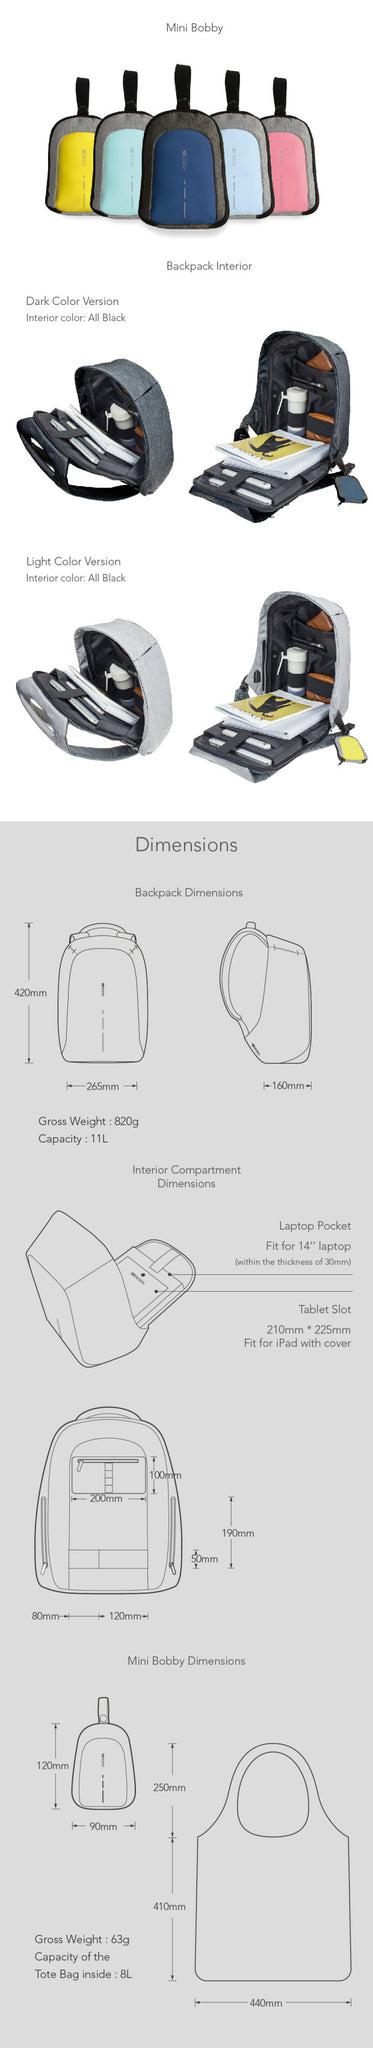 Bobby Compact Dimensions